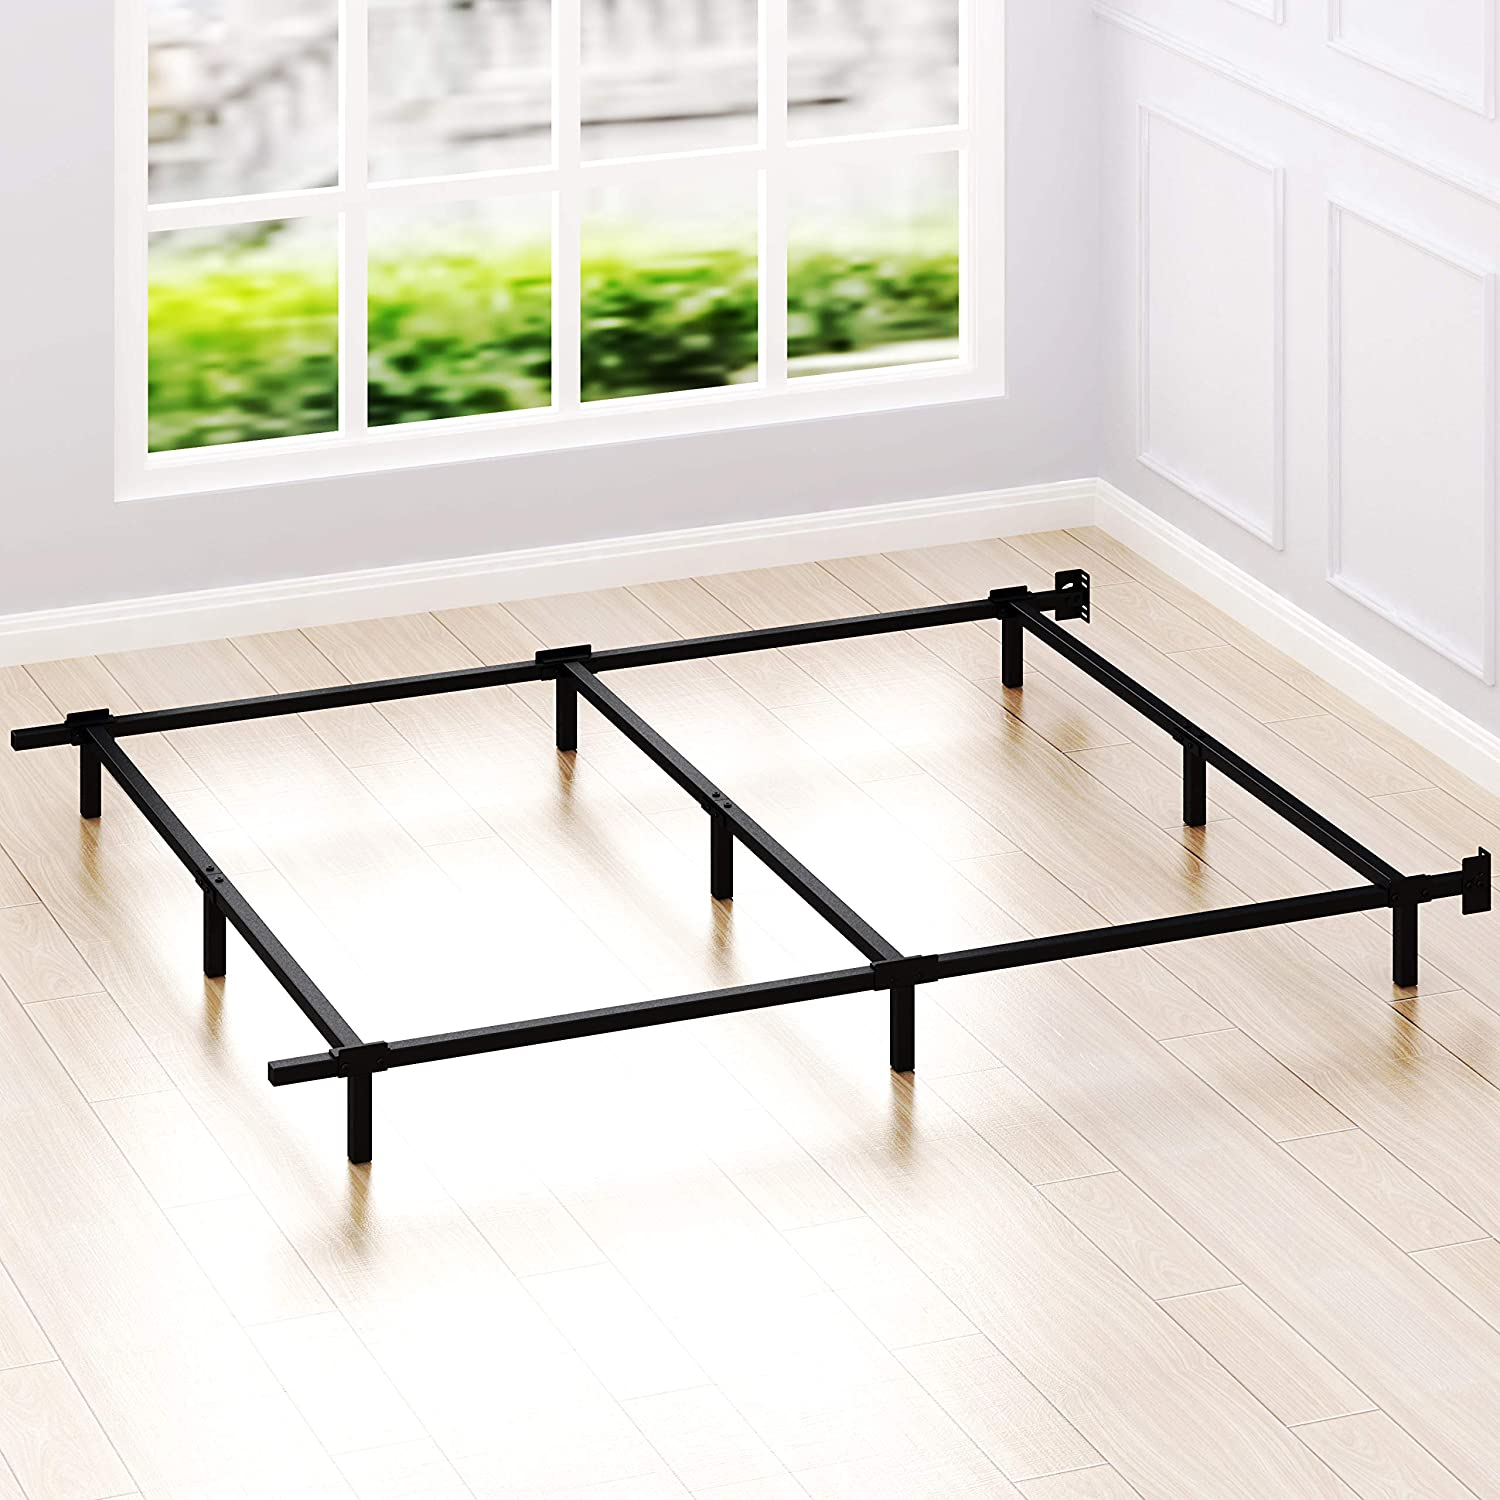 Simple Houseware Stable Bed Frame, Full